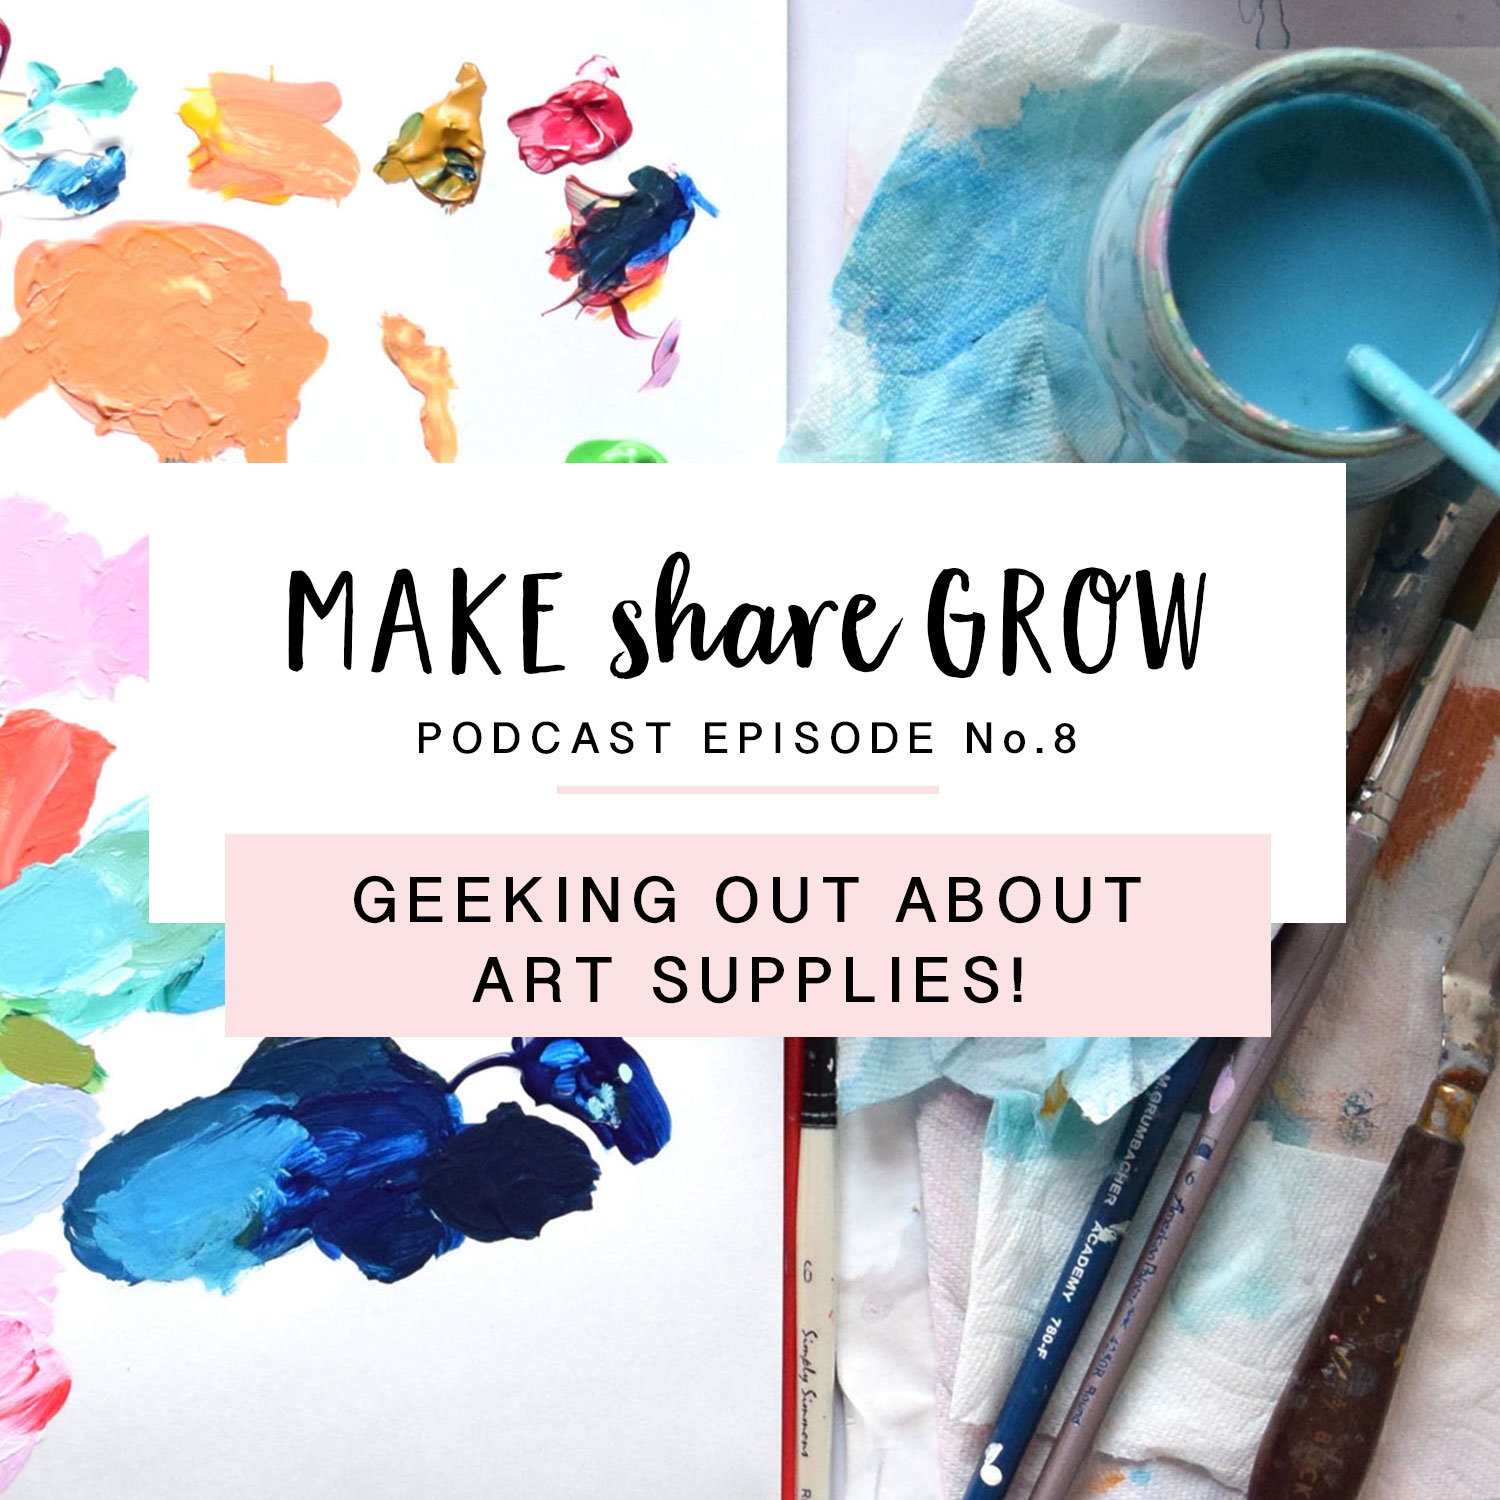 Make-Share-Grow-Podcast-Episode-8-art.jpg